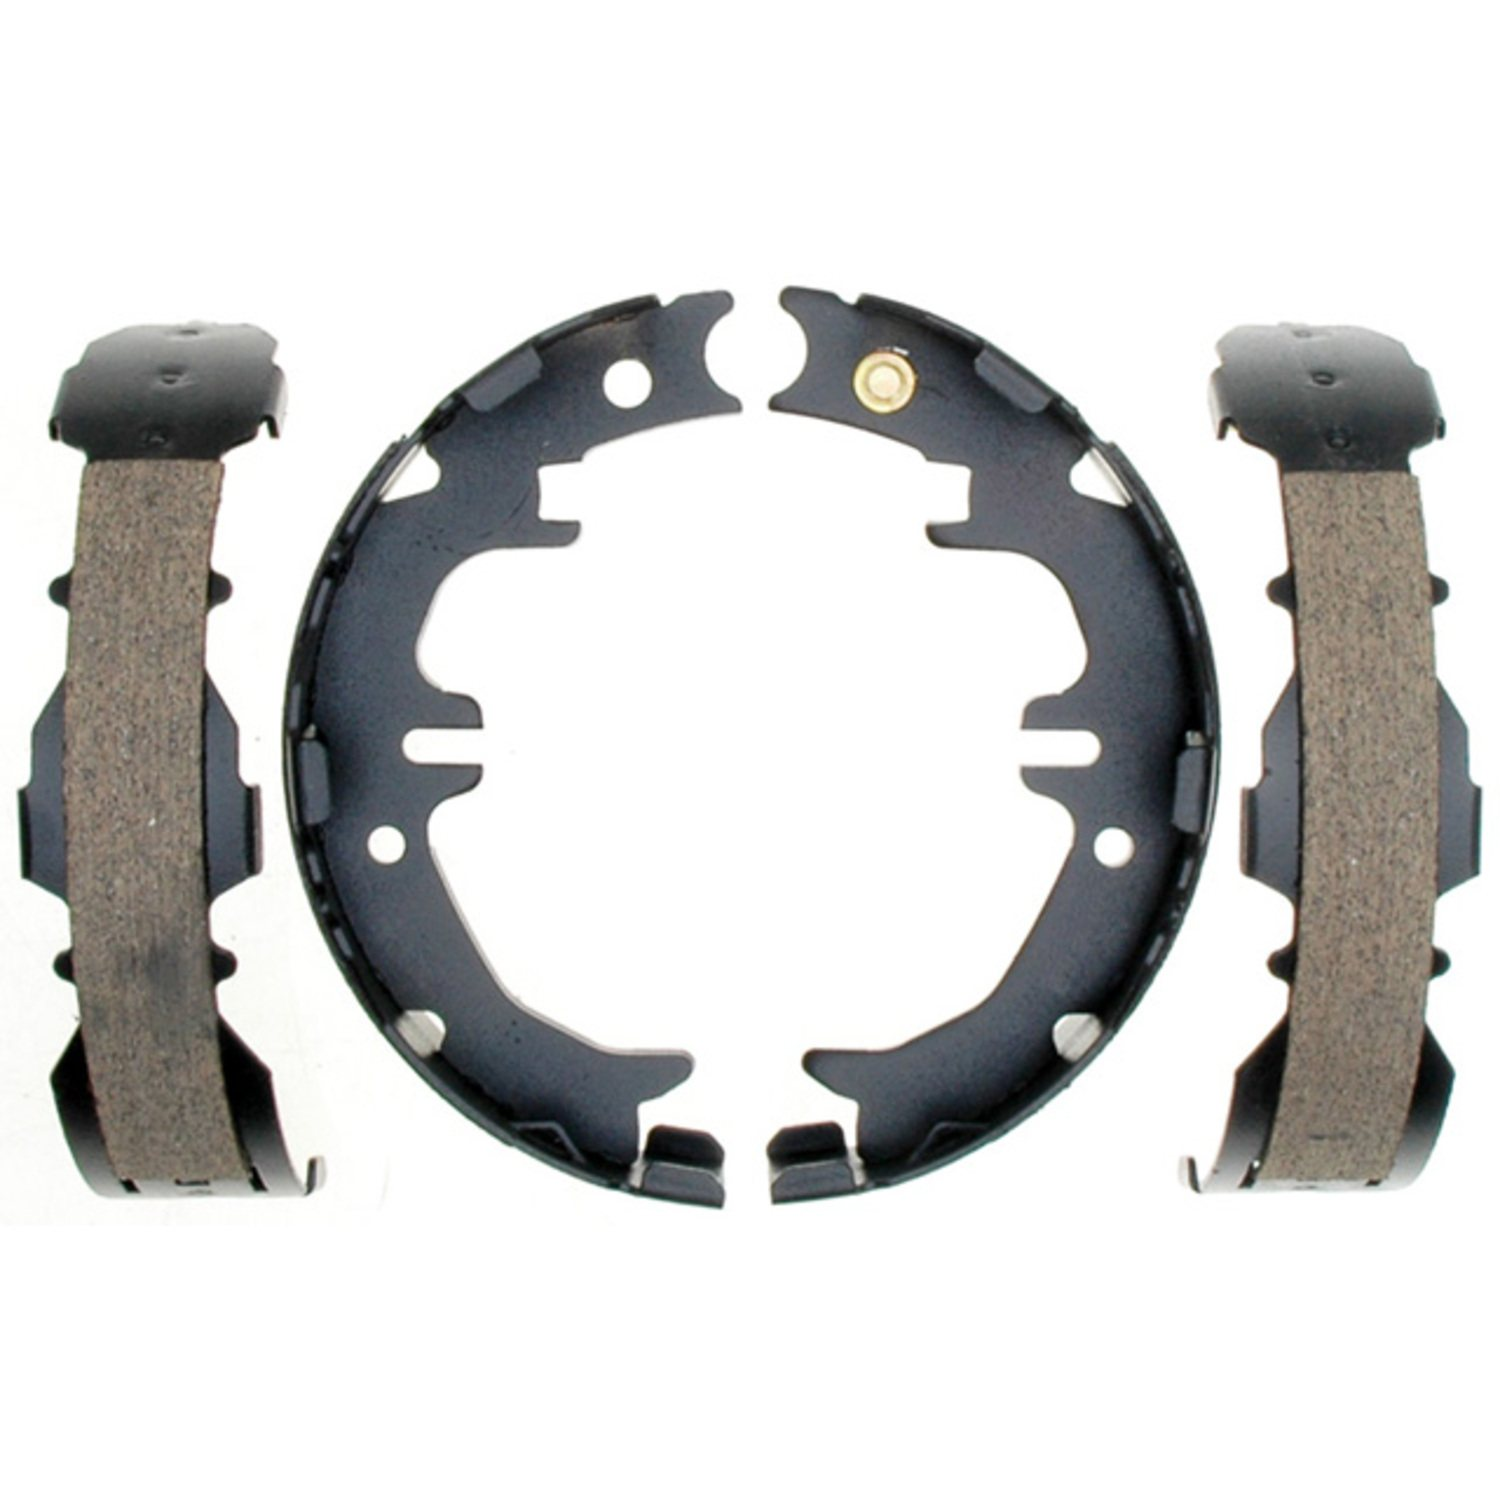 ACDELCO SILVER/ADVANTAGE - Bonded Parking Brake Shoe (Rear) - DCD 14846B